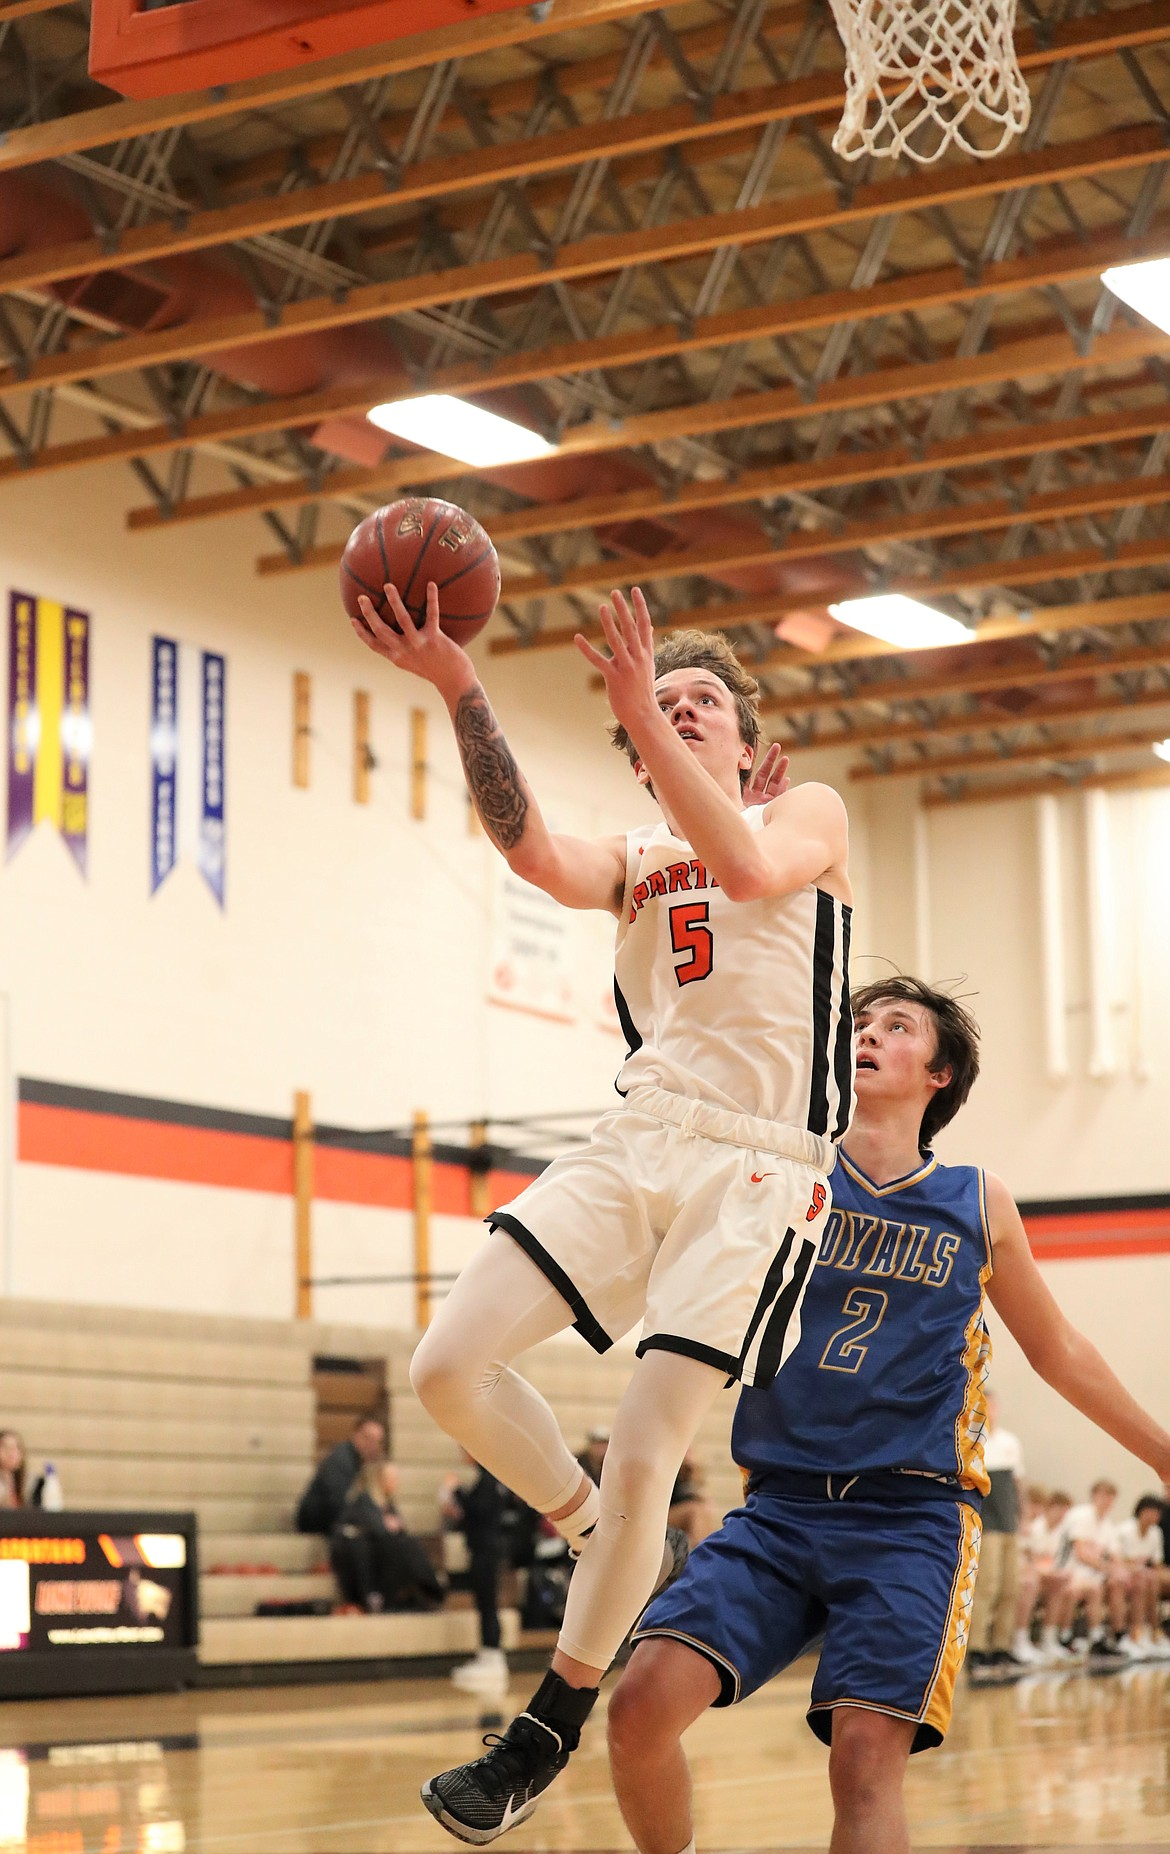 Trentyn Kreager takes off to convert a layup on Monday.